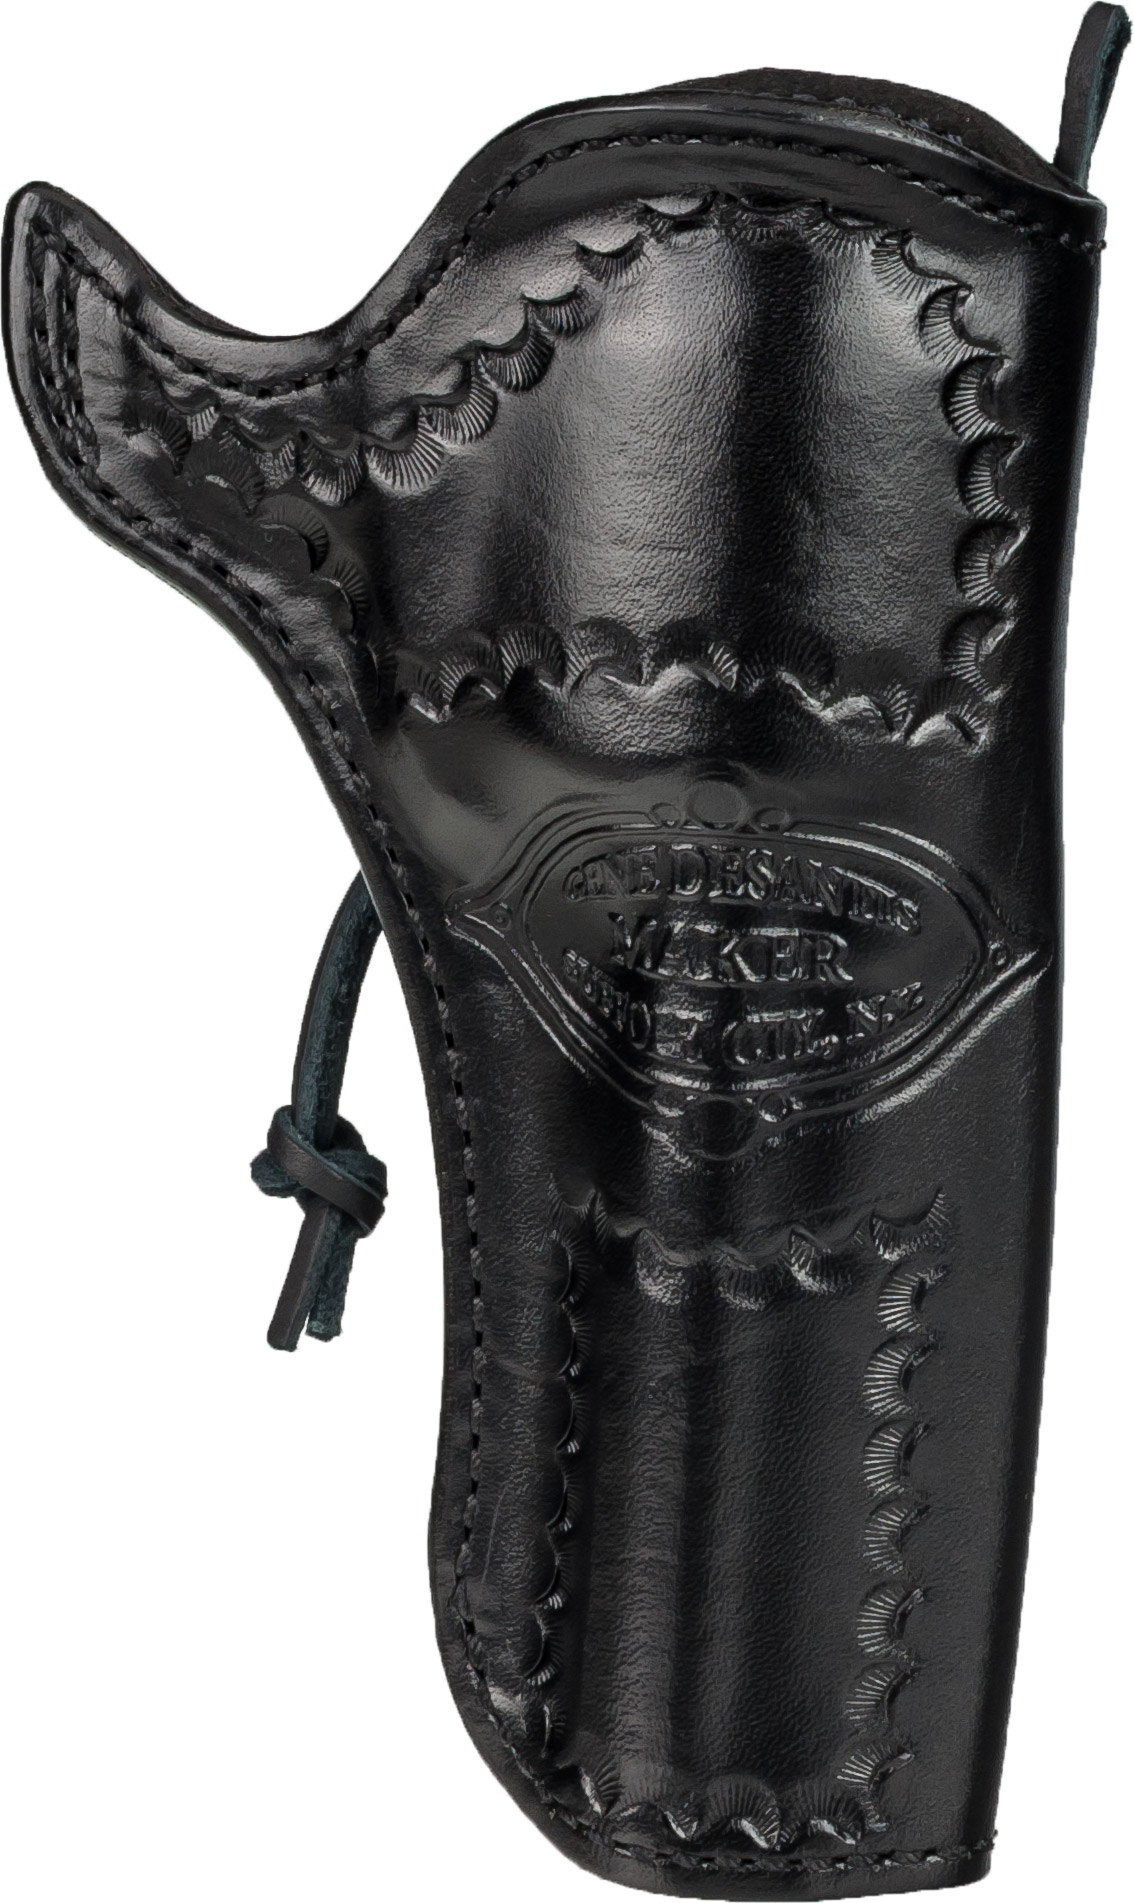 DeSantis Right Hand Black Doc Holliday Cross Draw Holster 083BC54Z0 - COLT  SAA 4in